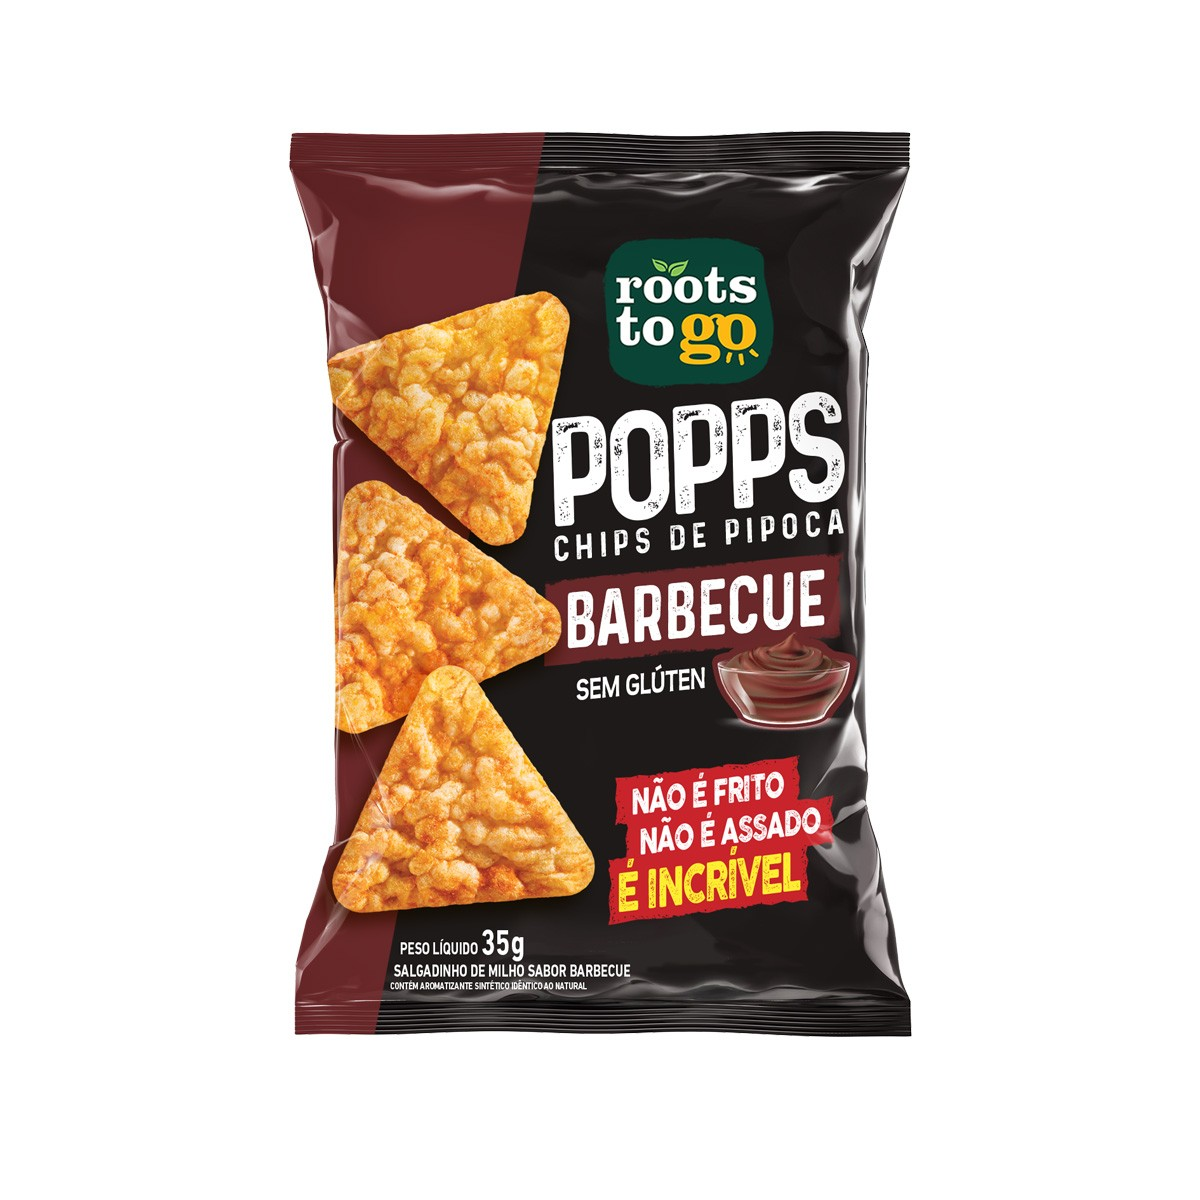 Popps Chips de Pipoca Sabor Barbecue 35g - Roots To Go ****